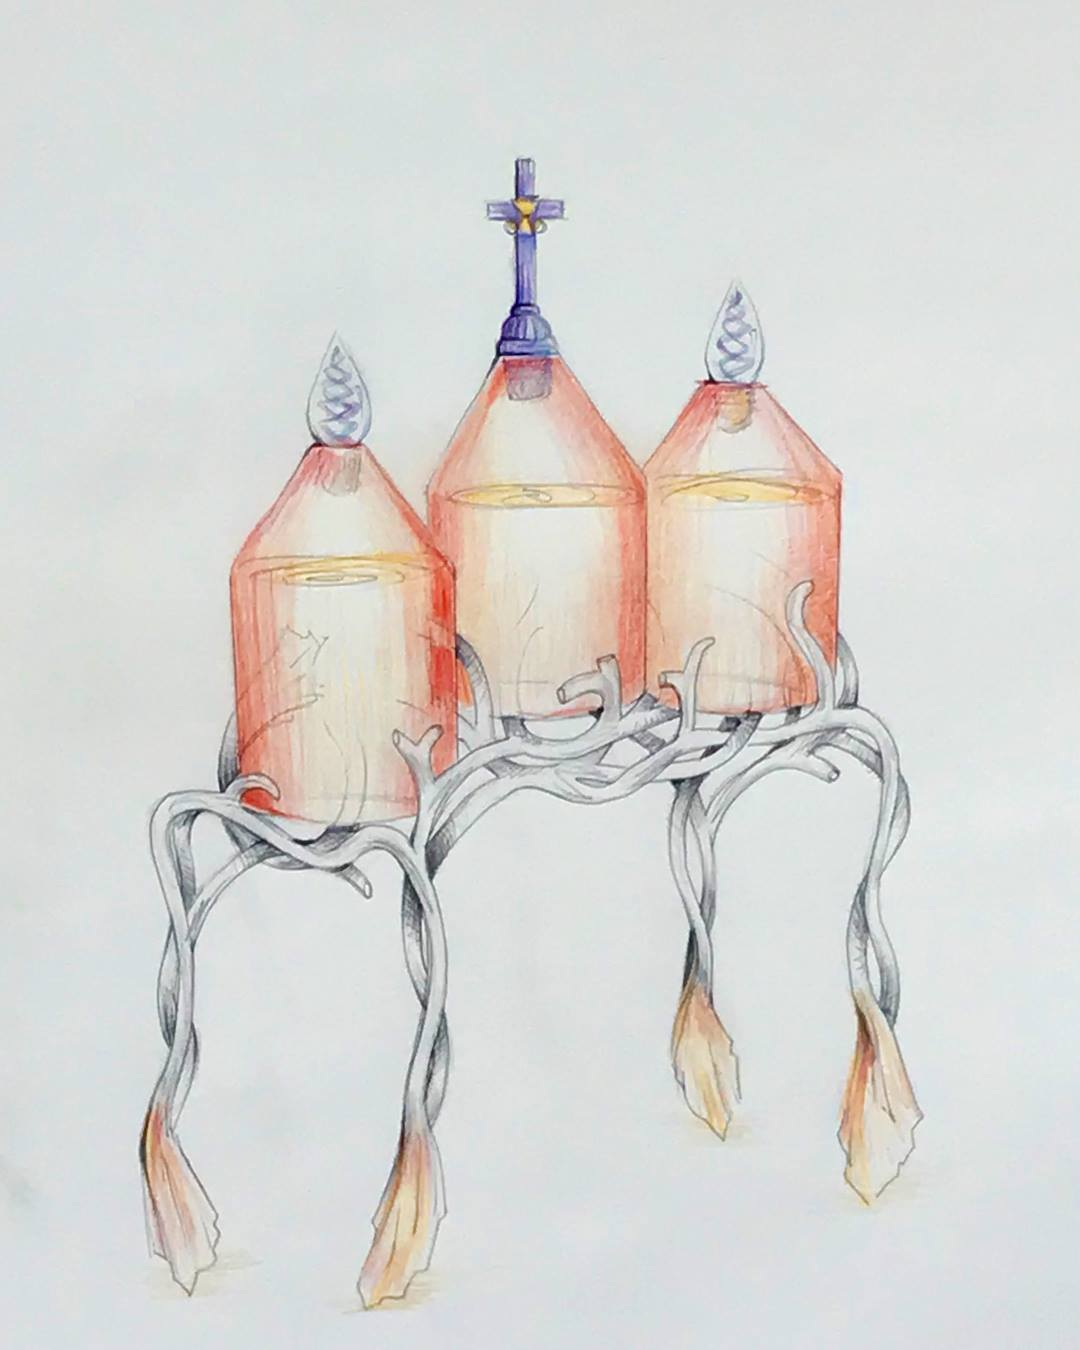 Archbishop Gustavo has commissioned us to make nine 5 gallon vessels for the blessing of the holy oils for the entire archdiocese. They will appear in the sanctuary where the Archbishop will blow the Holy Spirit into them during the Chrism Mass on the Tuesday of Holy Mass on the Tuesday of Holy Week. Present will be the whole priesthood to receive their own oils for each project.